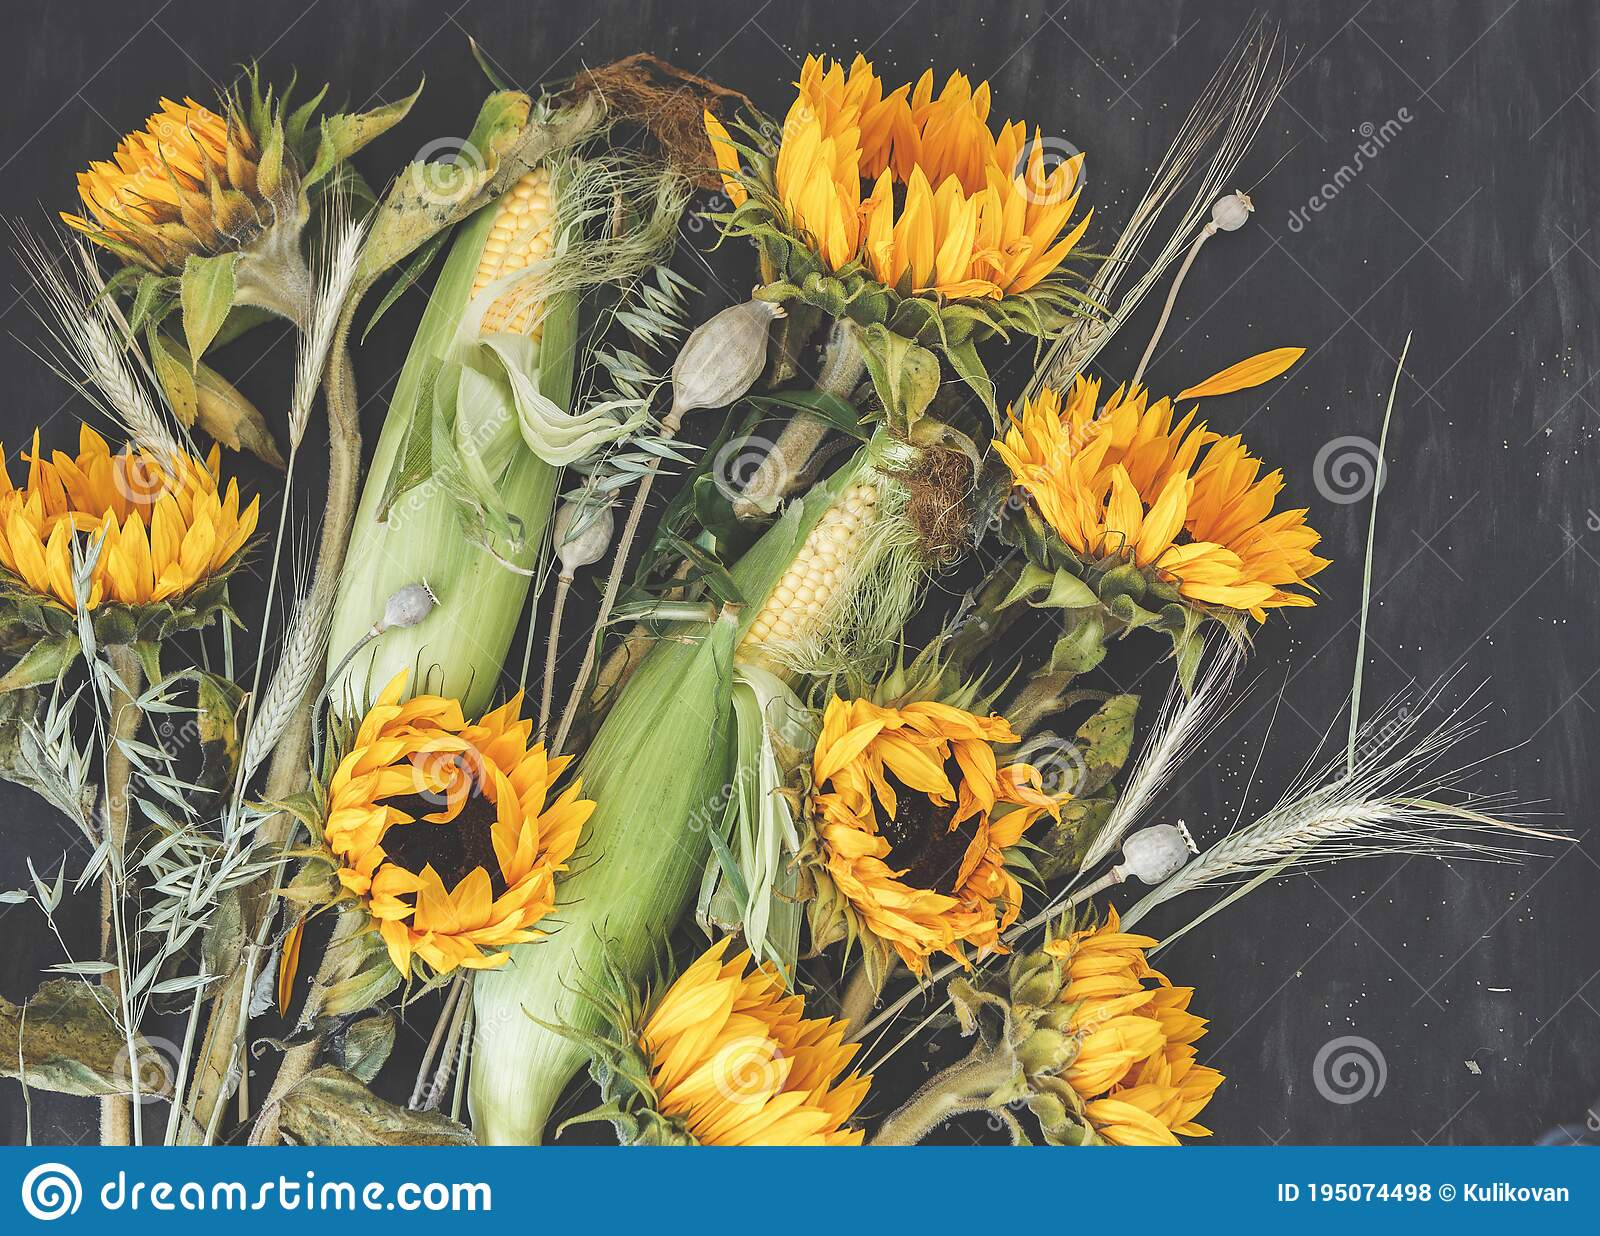 Bouquet Of Flowers And Vegetables Sunflowers Corn Poppies Boxes Wheat And Oats On Dark Background Autumn Harvest Stock Photo Image Of Flowers Botanical 195074498